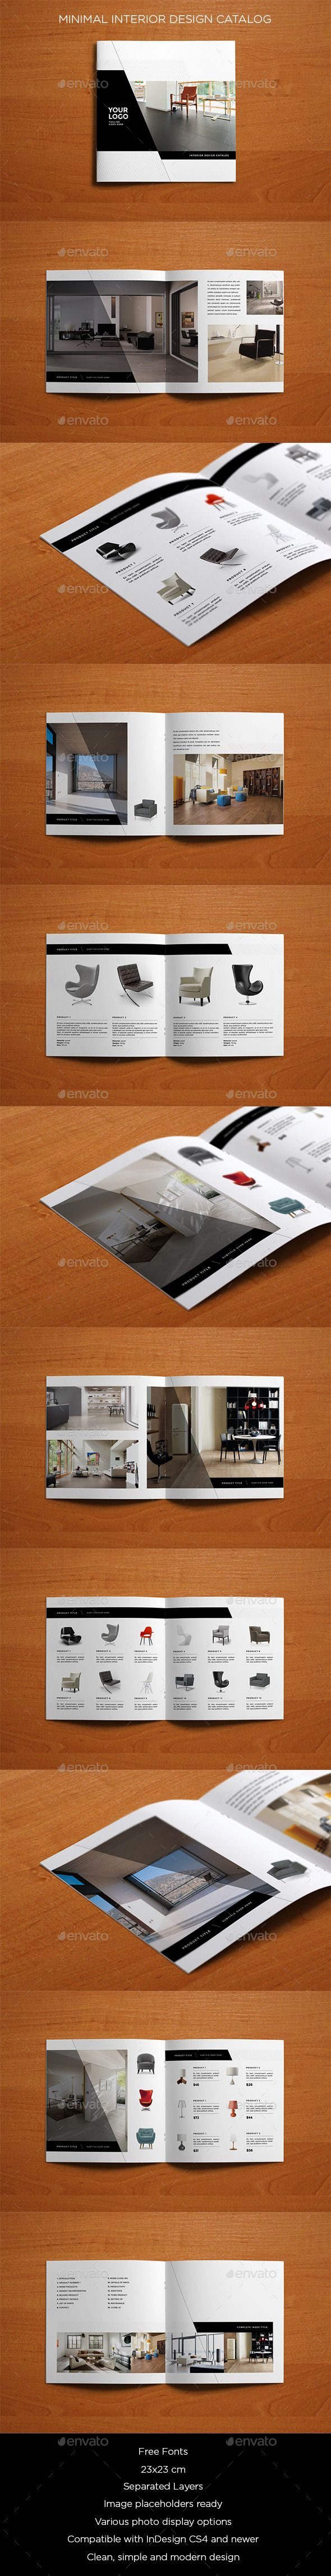 Minimal Interior Design Catalog Template #design Download: http://graphicriver.net/item/minimal-interior-design-catalog/9849569?ref=ksioks